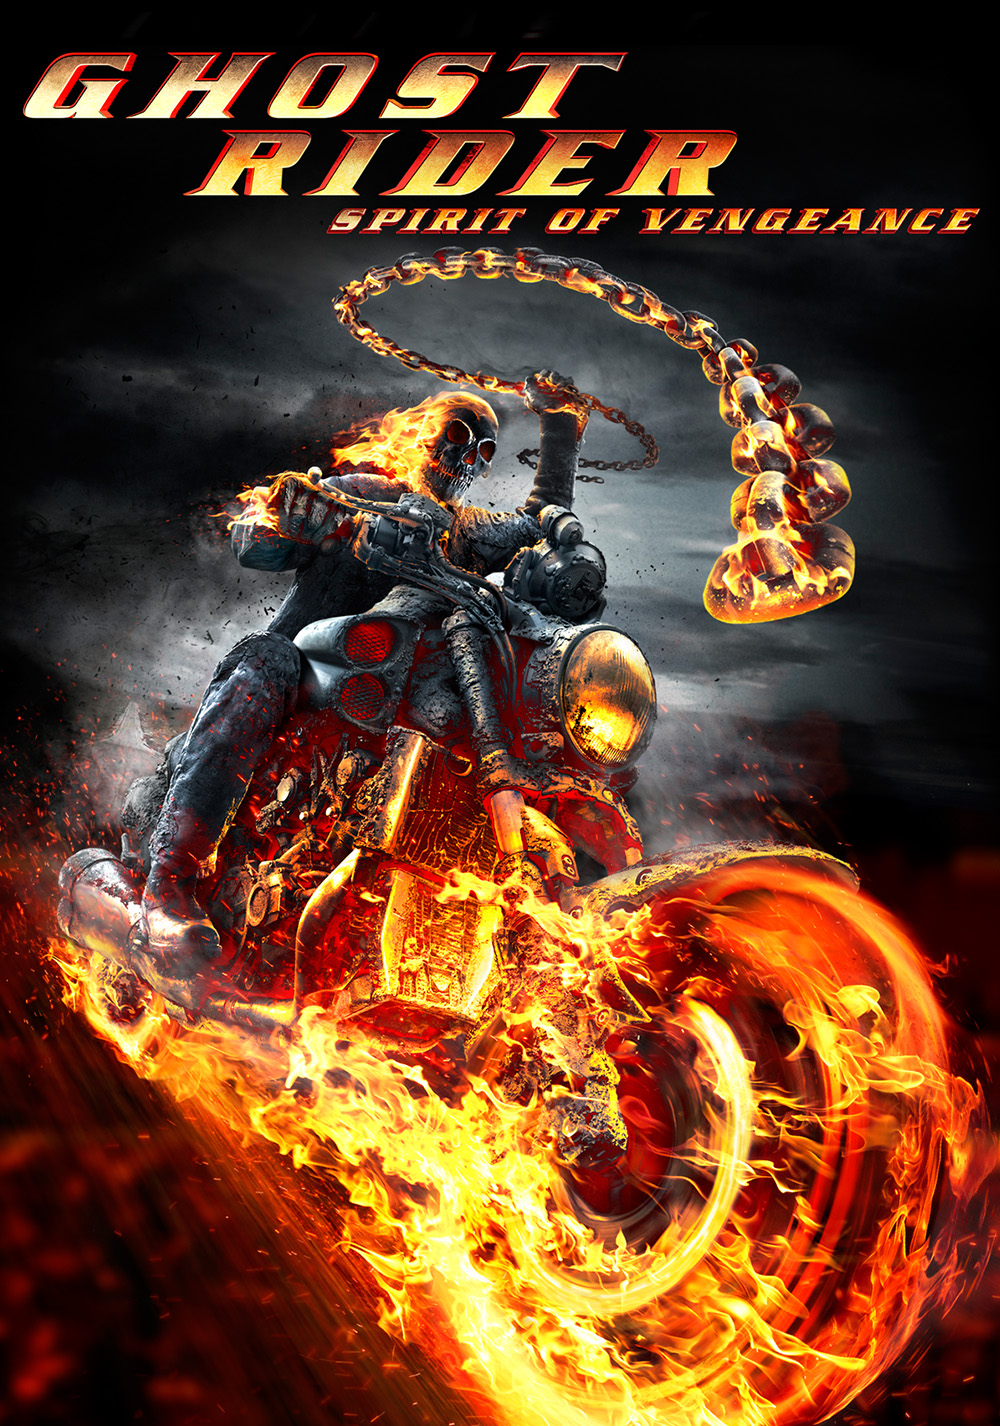 Download free ghost rider windows theme, ghost rider windows theme.